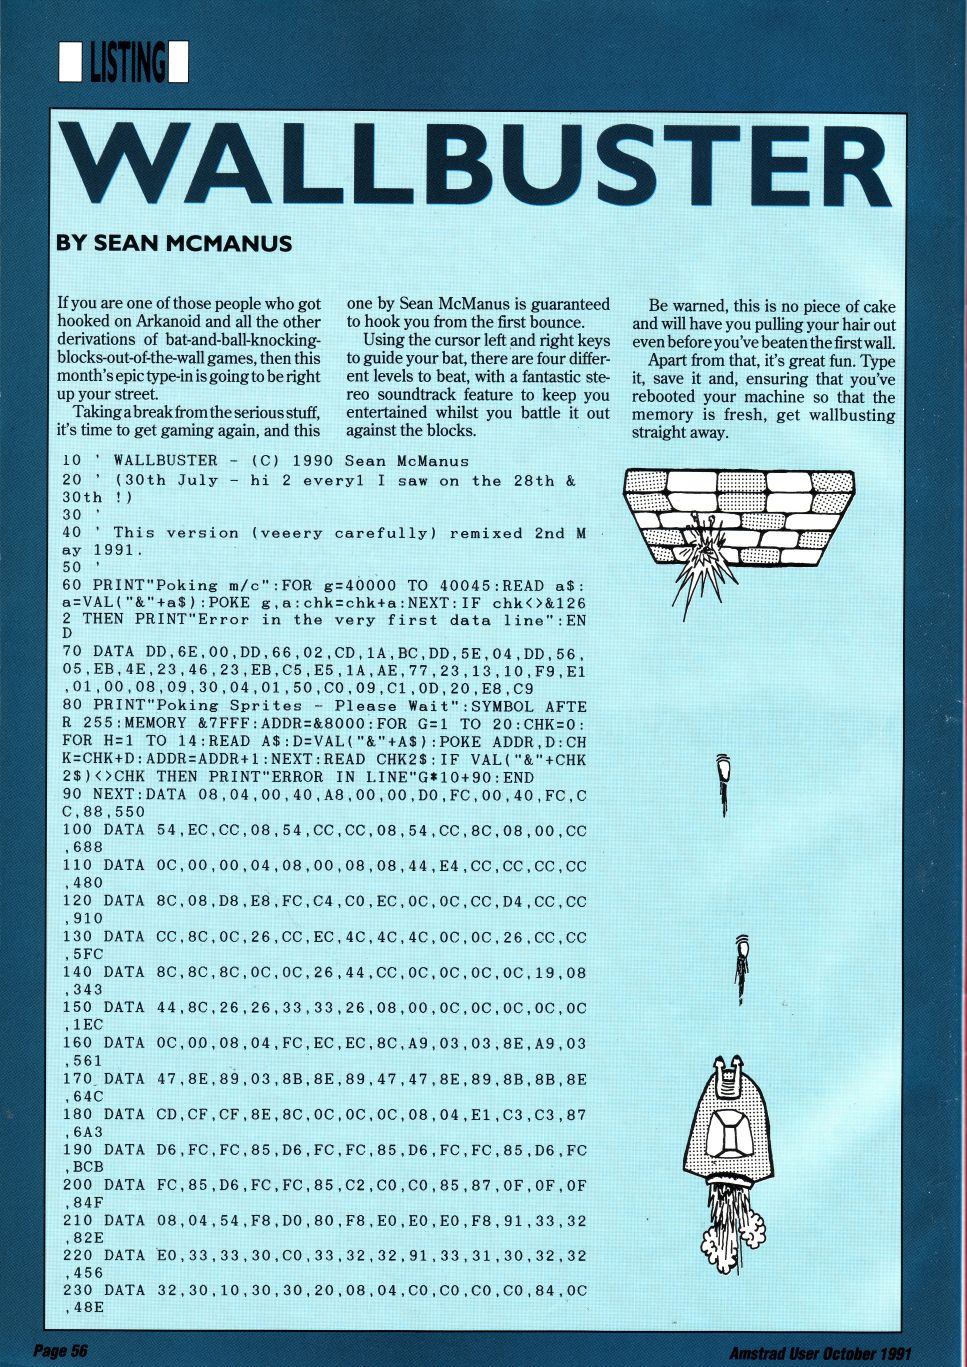 Scan of a magazine page showing the code listing for the Wallbuster program